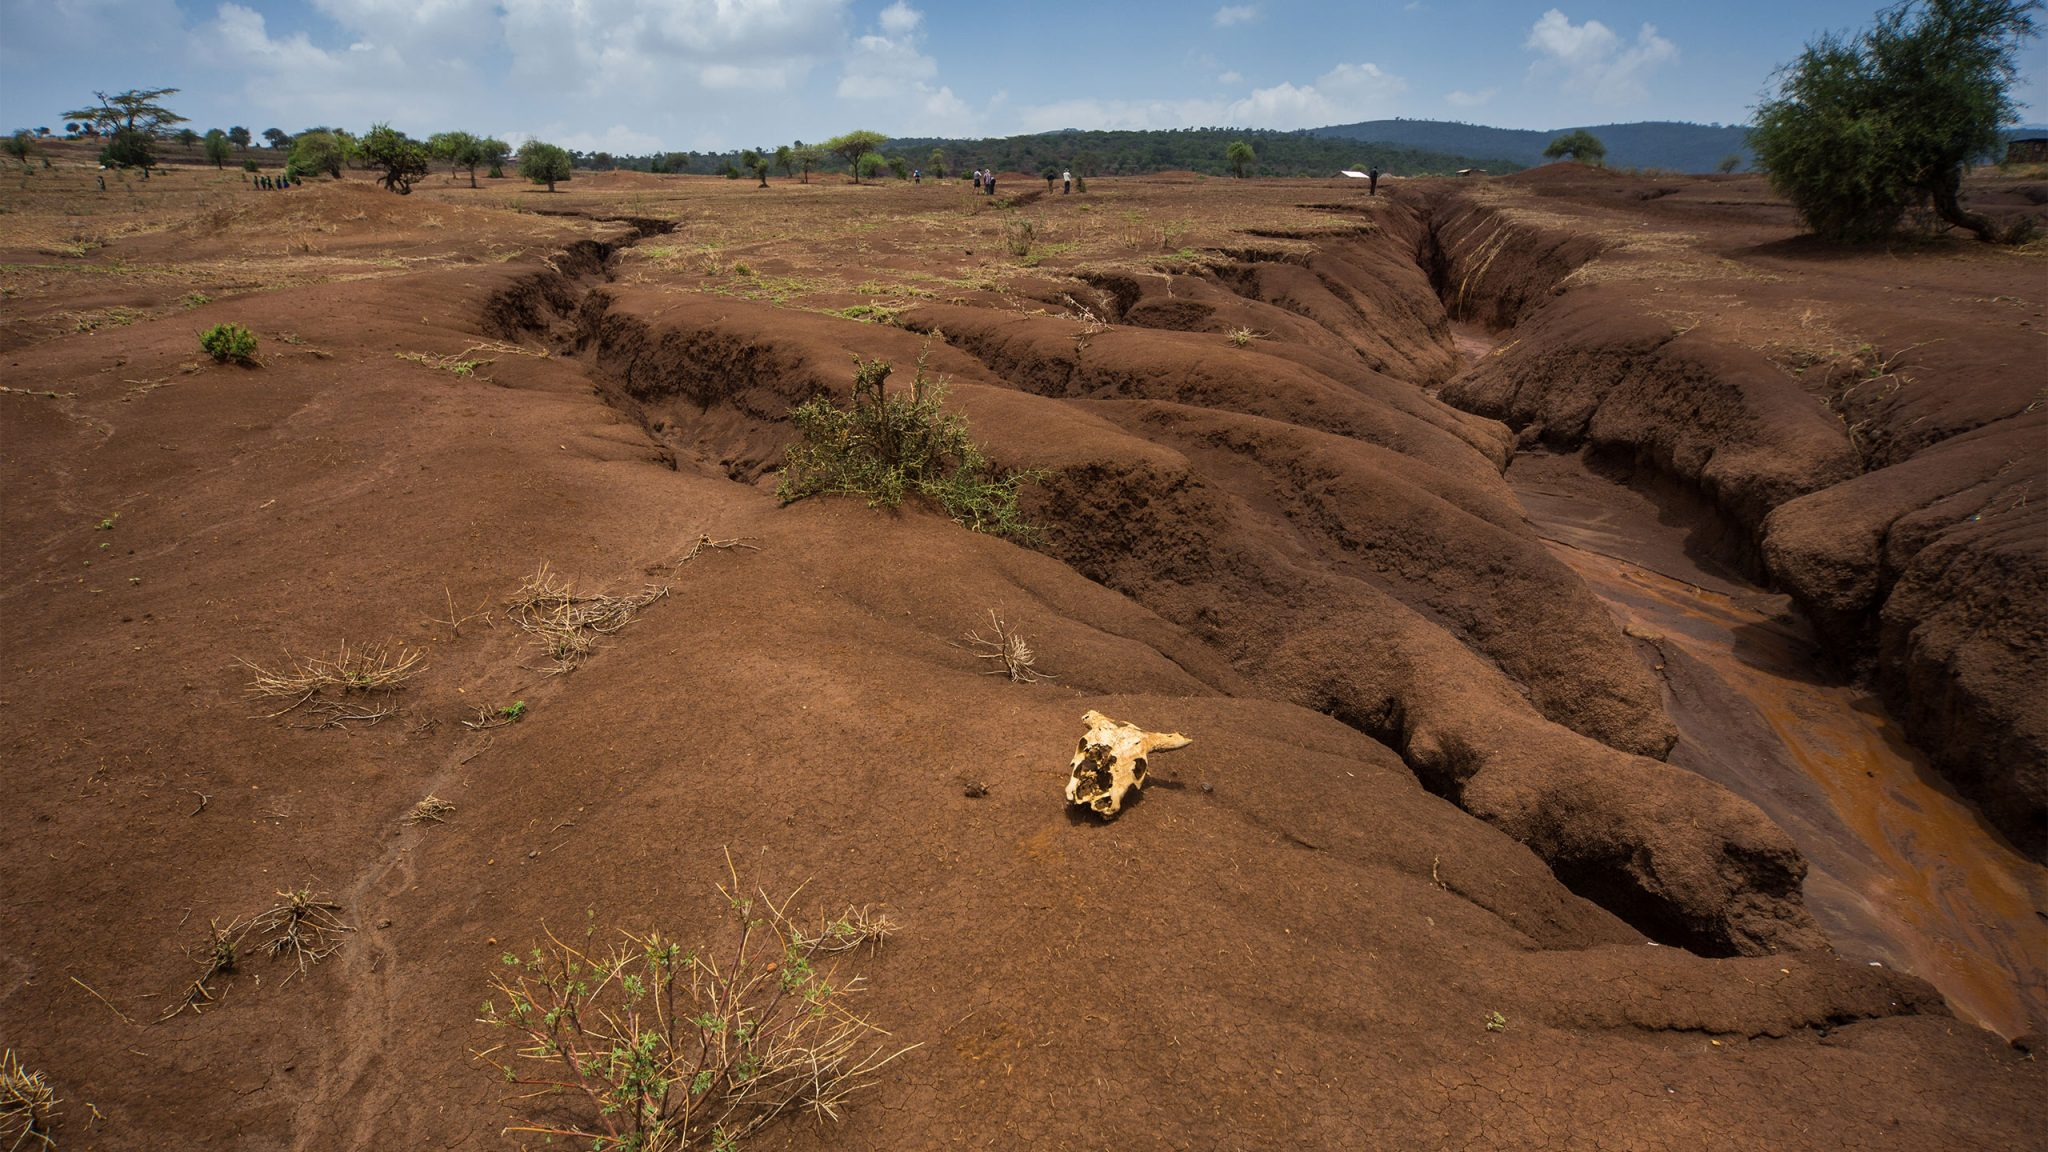 Landi Kenya in Tanzania. The global threats of climate change and population growth are key catalysts of the soil erosion challenge that is pushing these East African landscapes towards a tipping point. Here, we see deep gullies cutting into the landscape and literally cutting a village into two parts